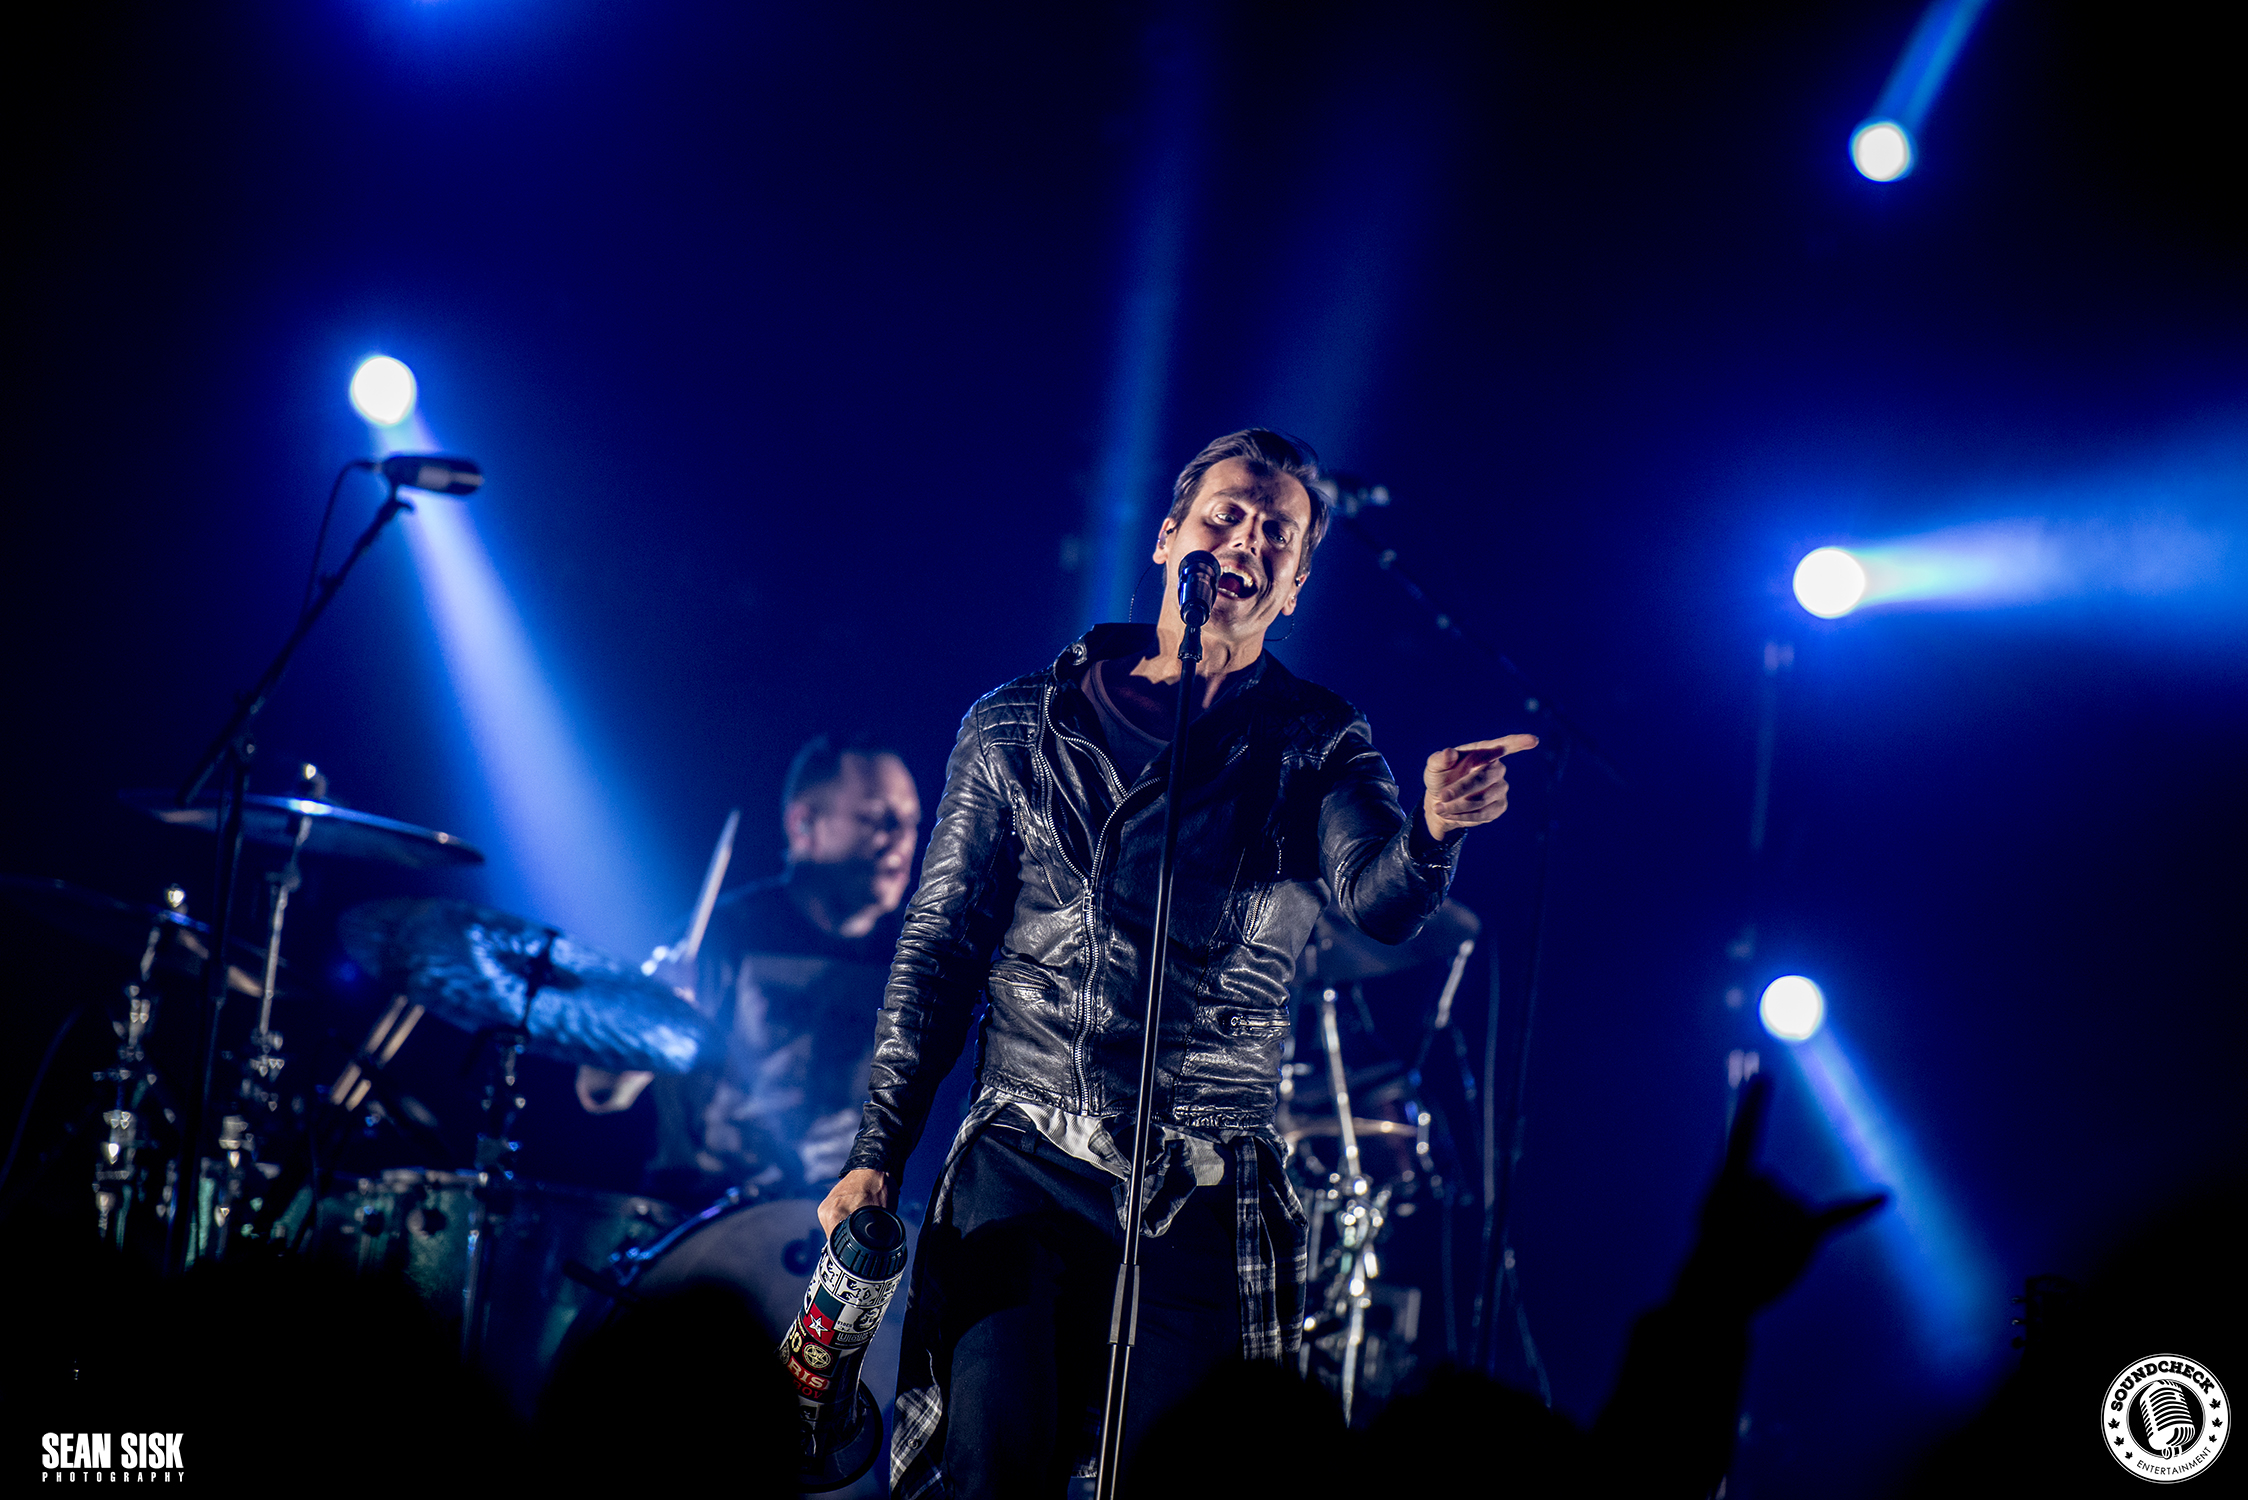 Raine Maida performs at TD Place with I Mother Earth – photo by Sean Sisk for Sound Check Entertainment